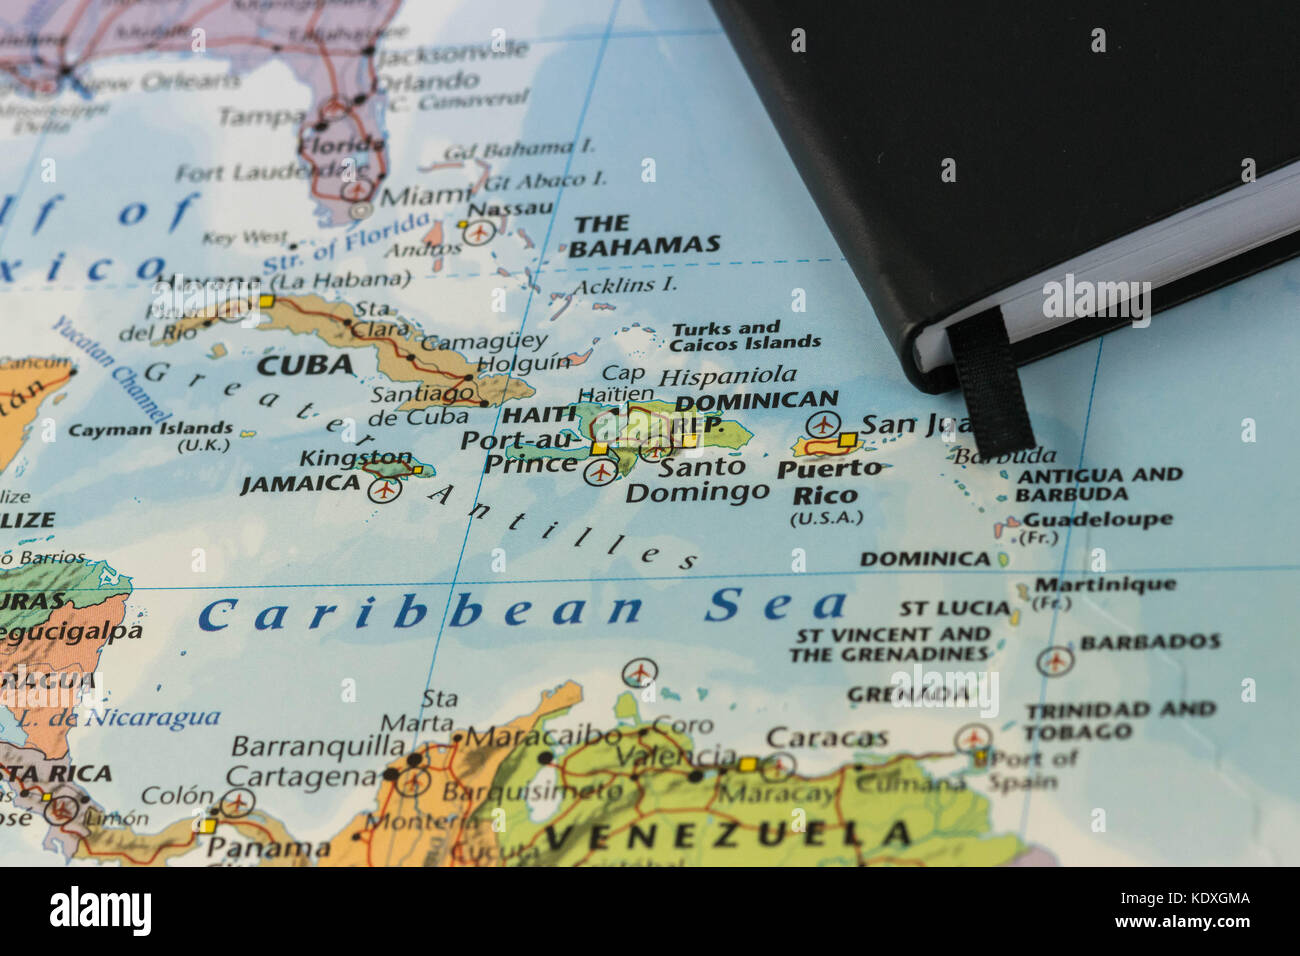 Caribbean Sea Map Stock Photos Caribbean Sea Map Stock Images - Jamaica map caribbean sea